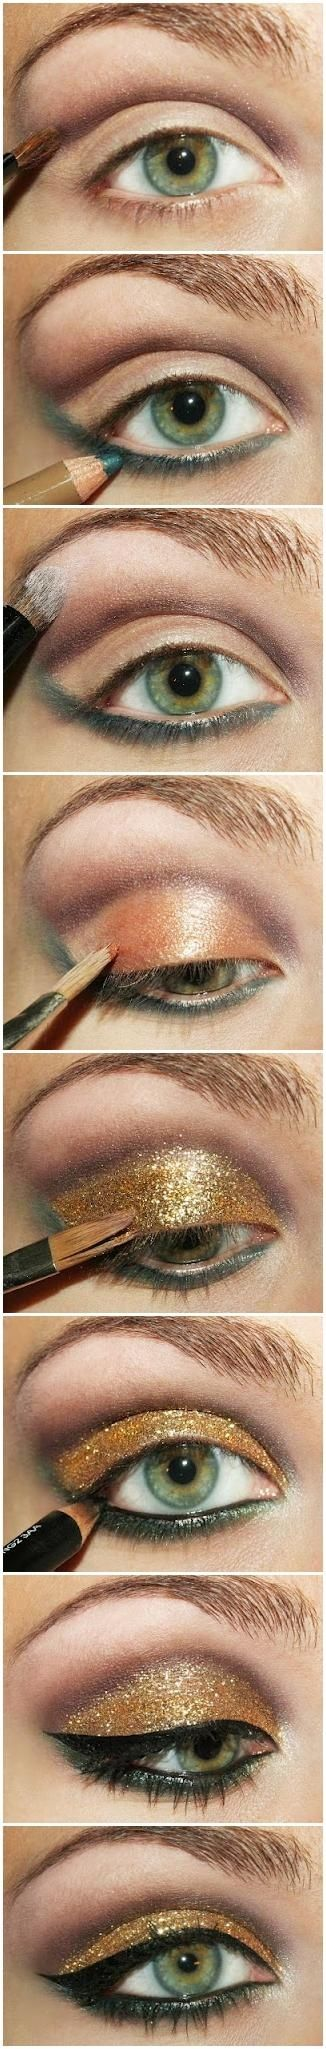 Gold eye shadow - perfect for Christmas or New Year's Eve event